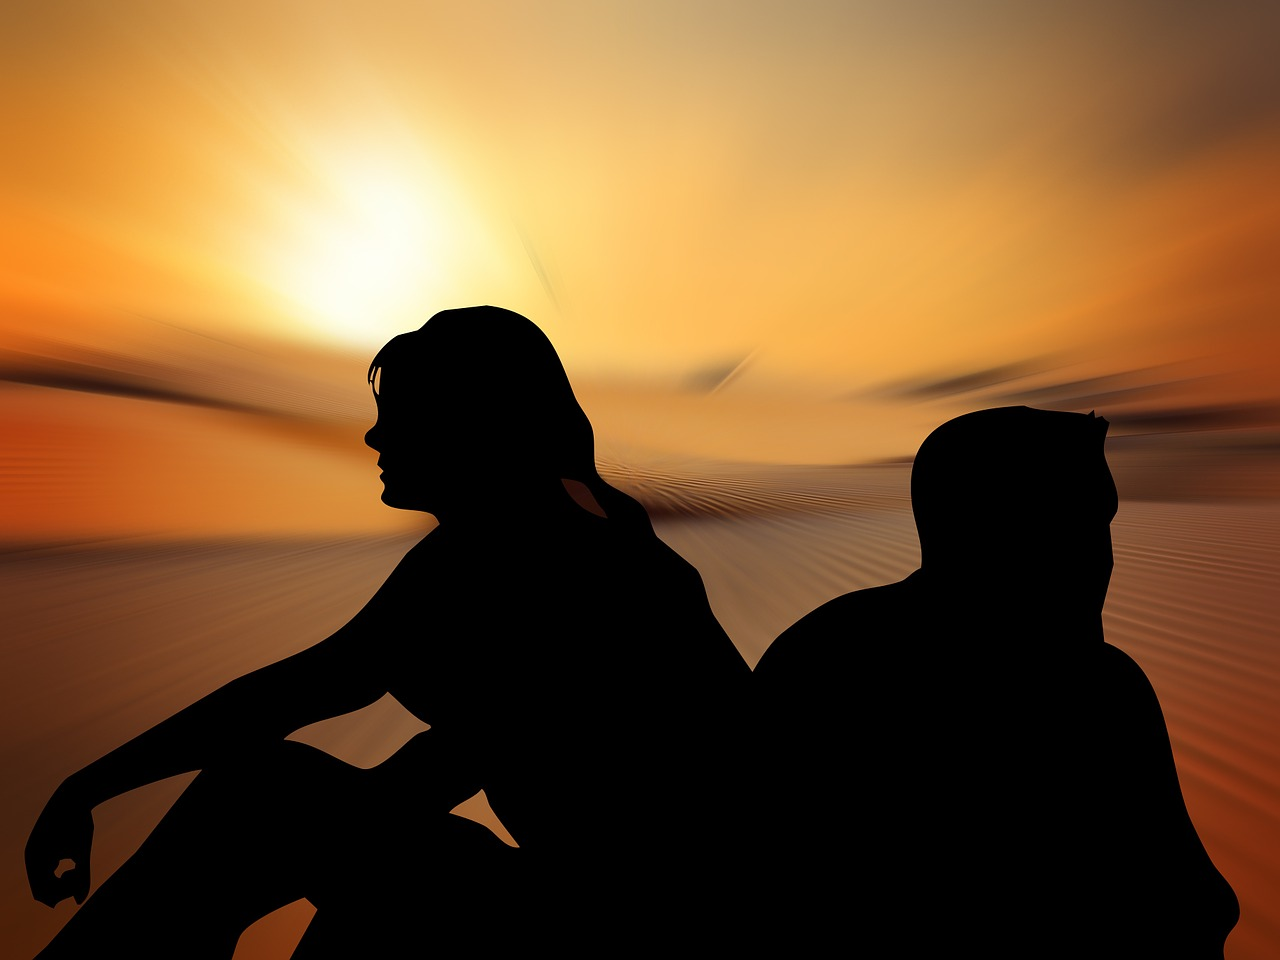 silhouettes, woman, man